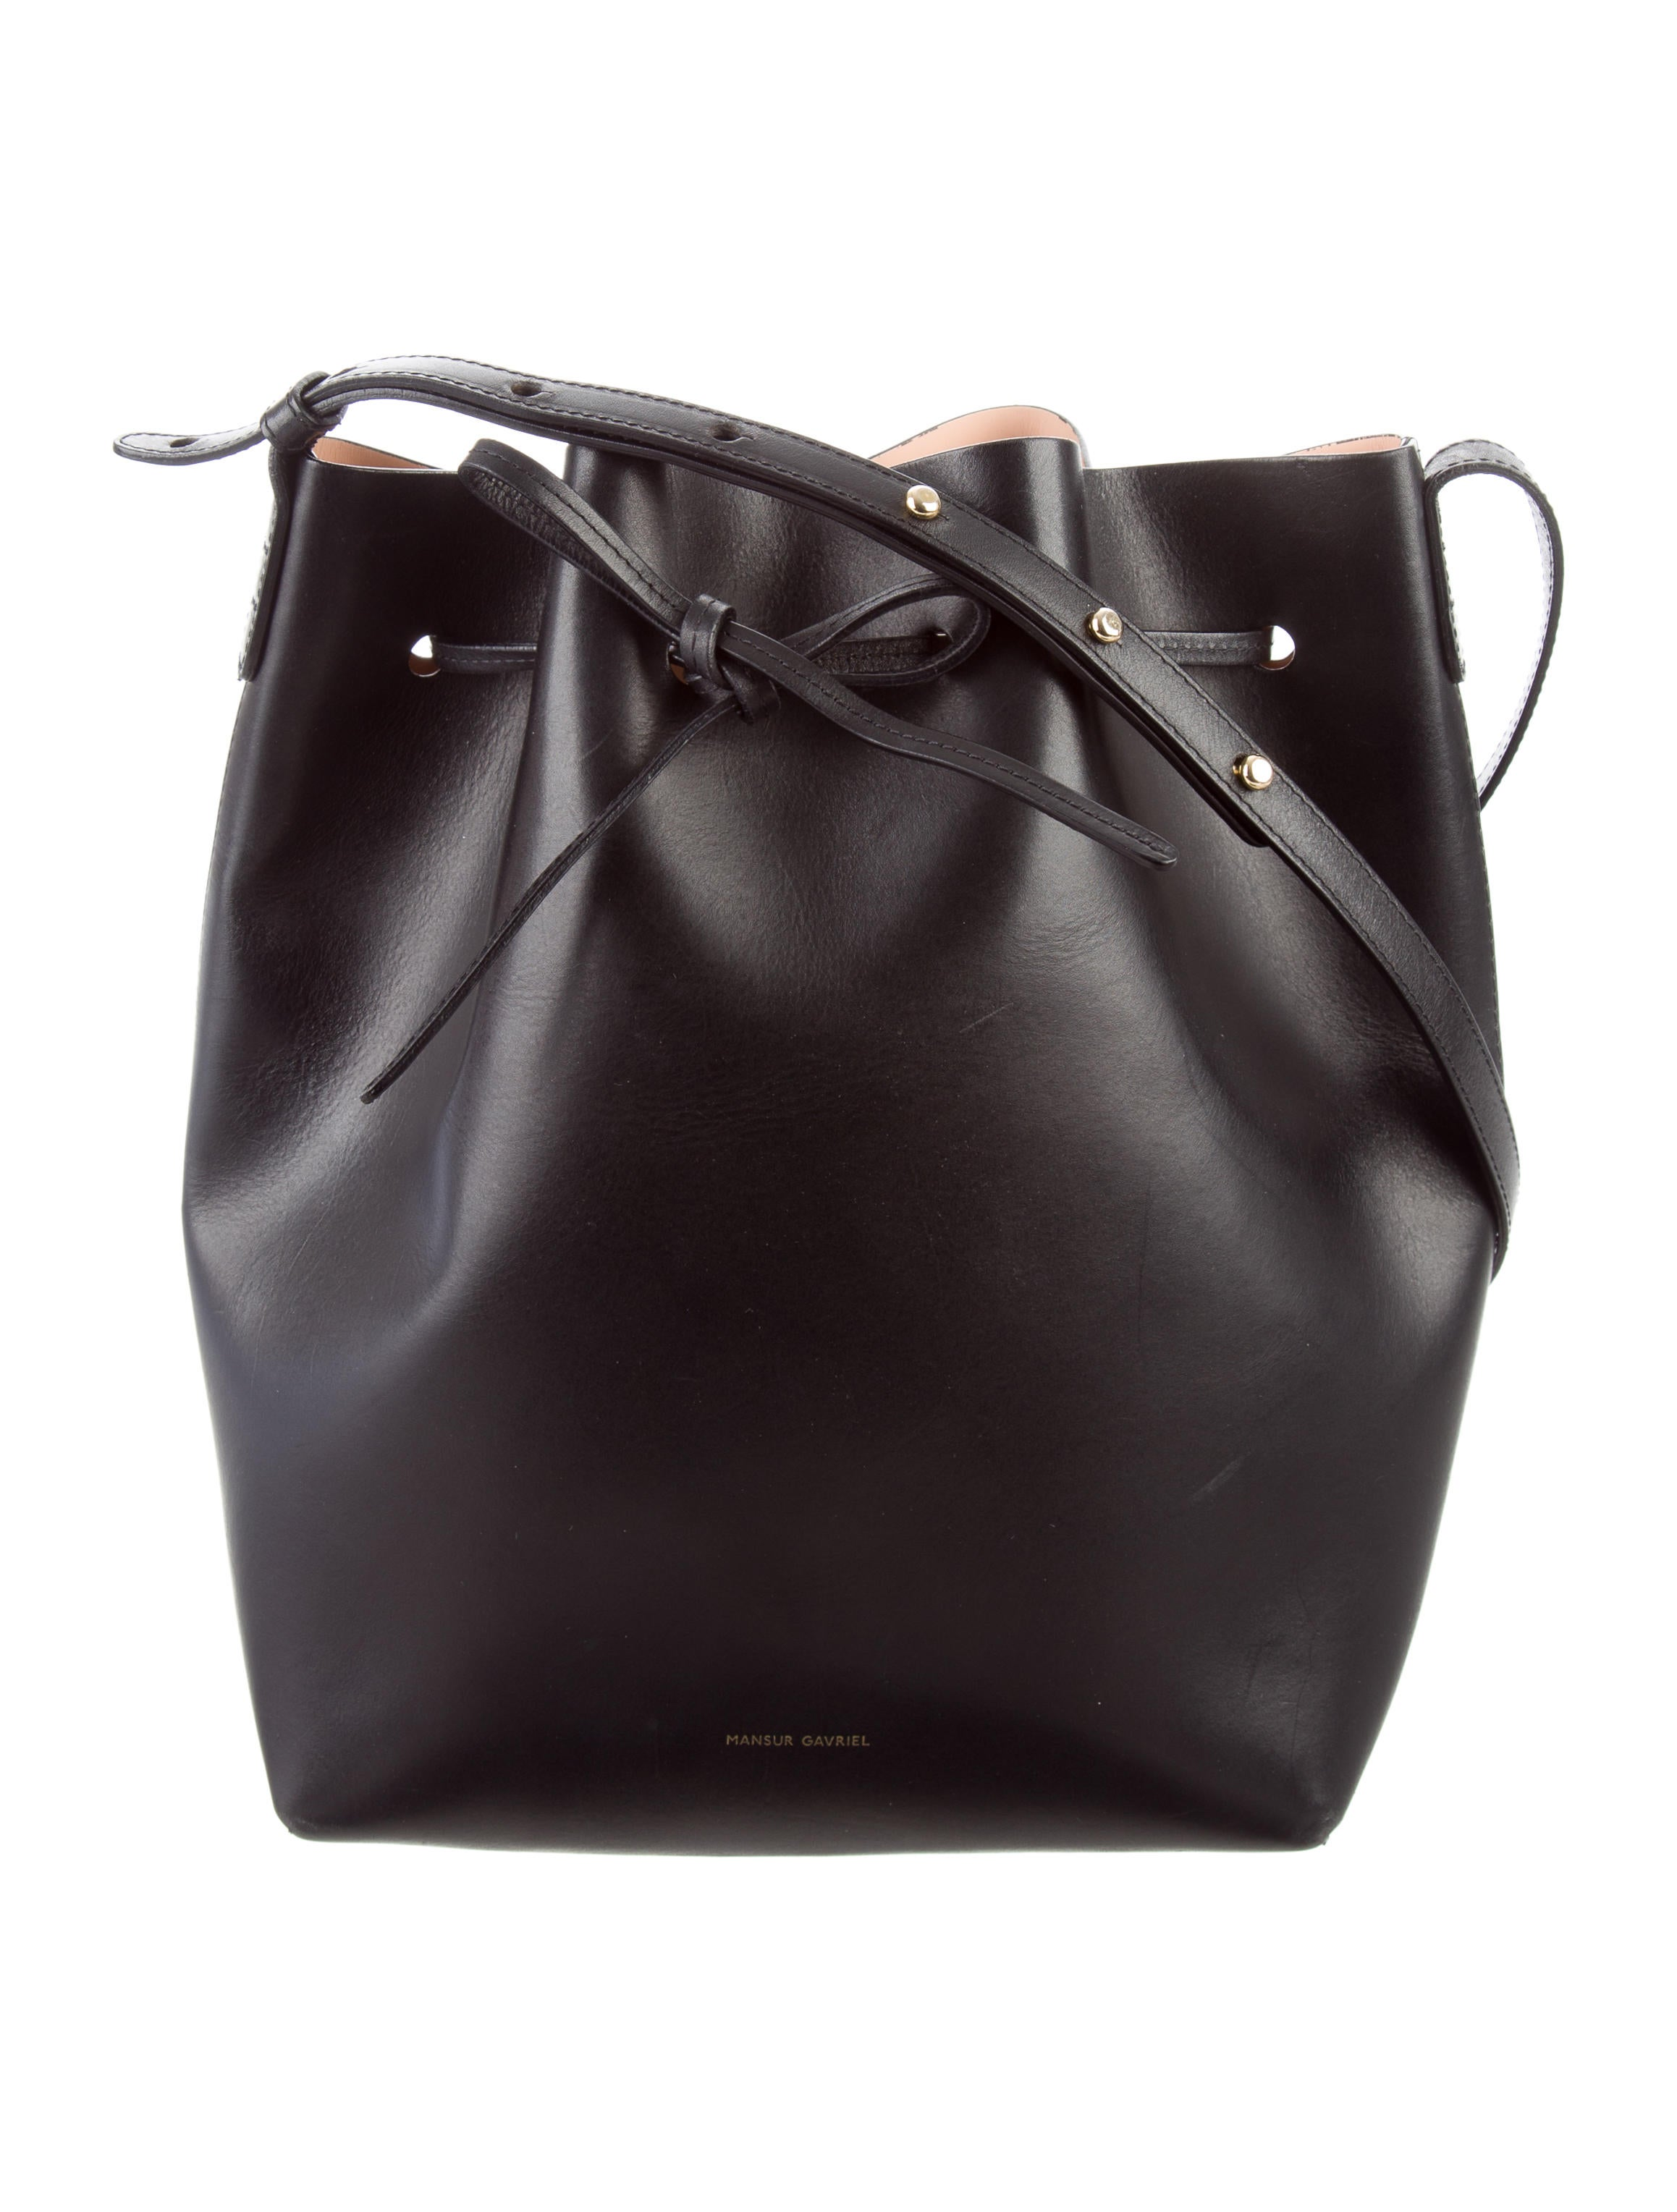 mansur gavriel bucket bag handbags wgy21864 the realreal. Black Bedroom Furniture Sets. Home Design Ideas